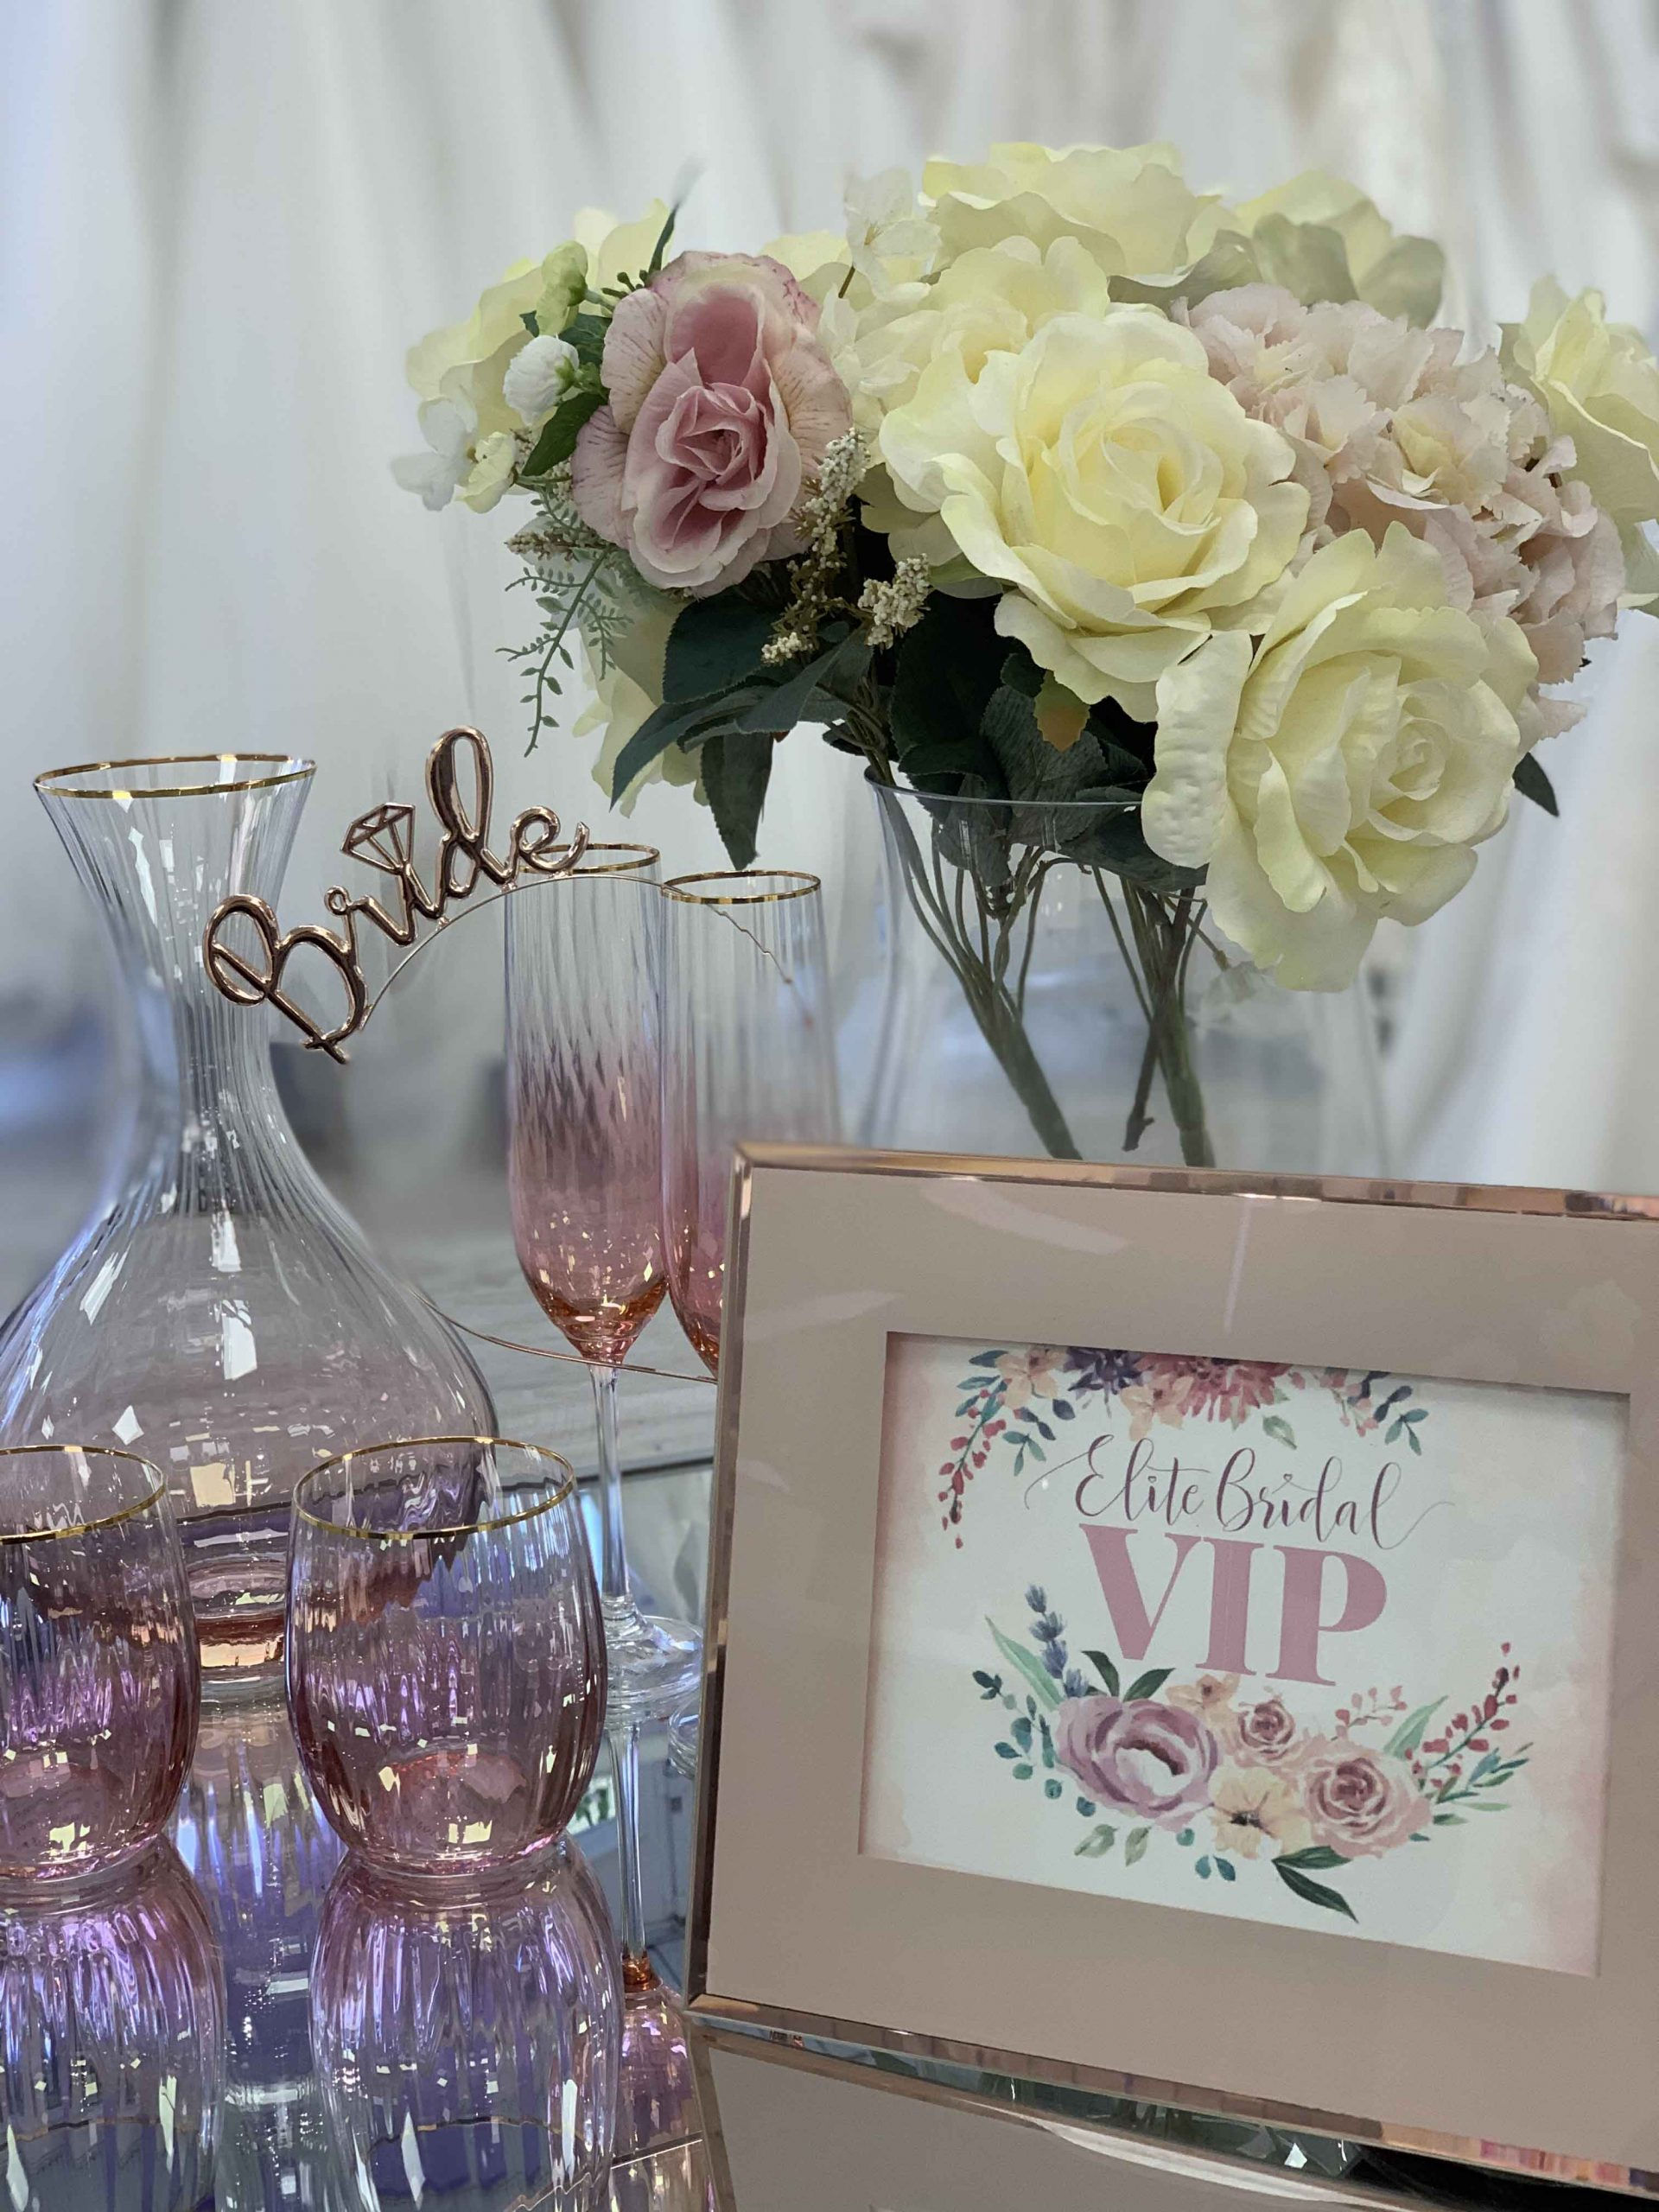 vip-appointments-elite-bridal8